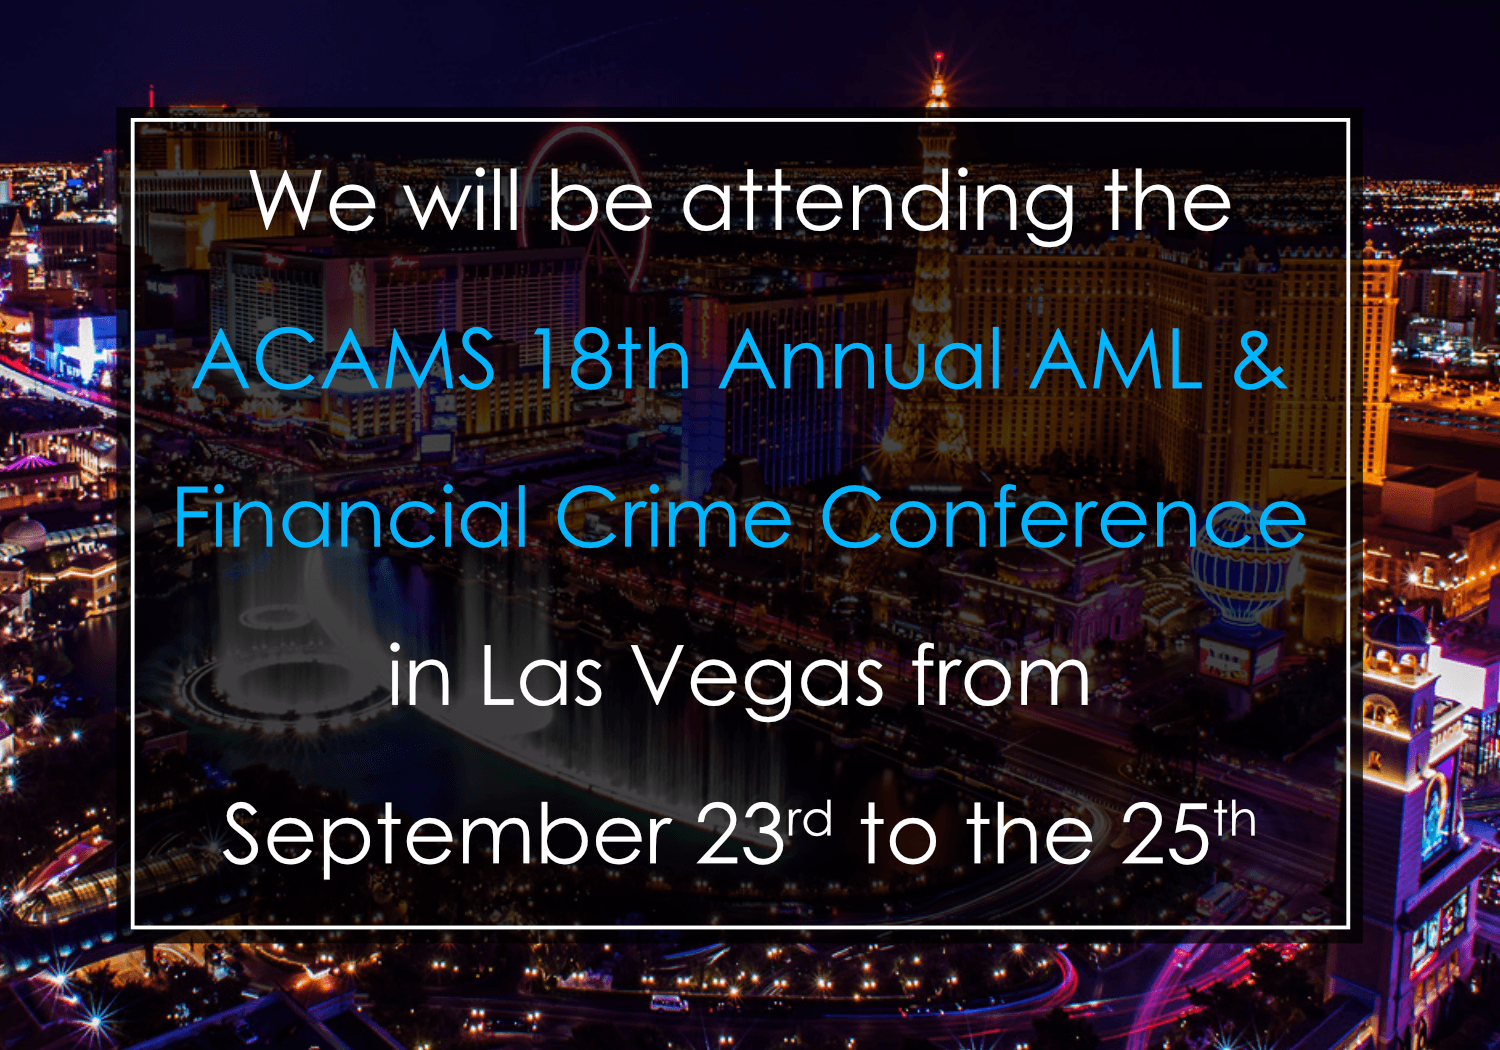 ACAMS 18th Annual AML & Financial Crime Conference - ARC Risk and